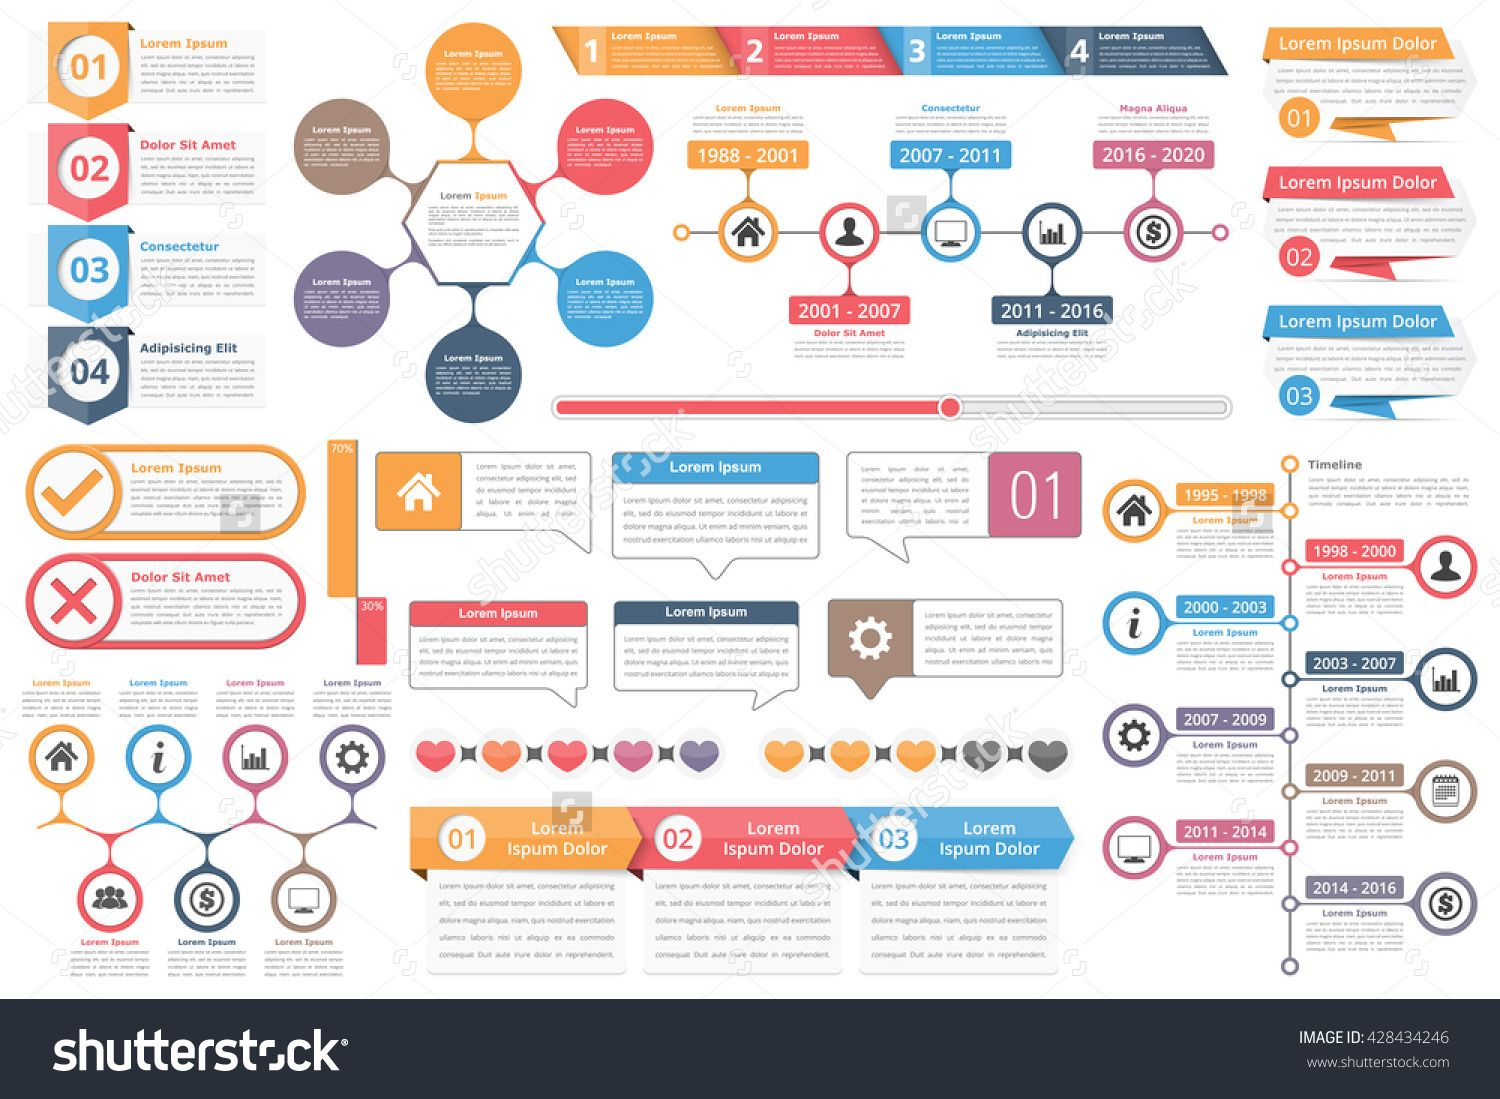 Infographic elements objects with numbers amd text timeline infographic elements objects with numbers amd text timeline infographics check and cross symbols circle diagramcross ccuart Image collections